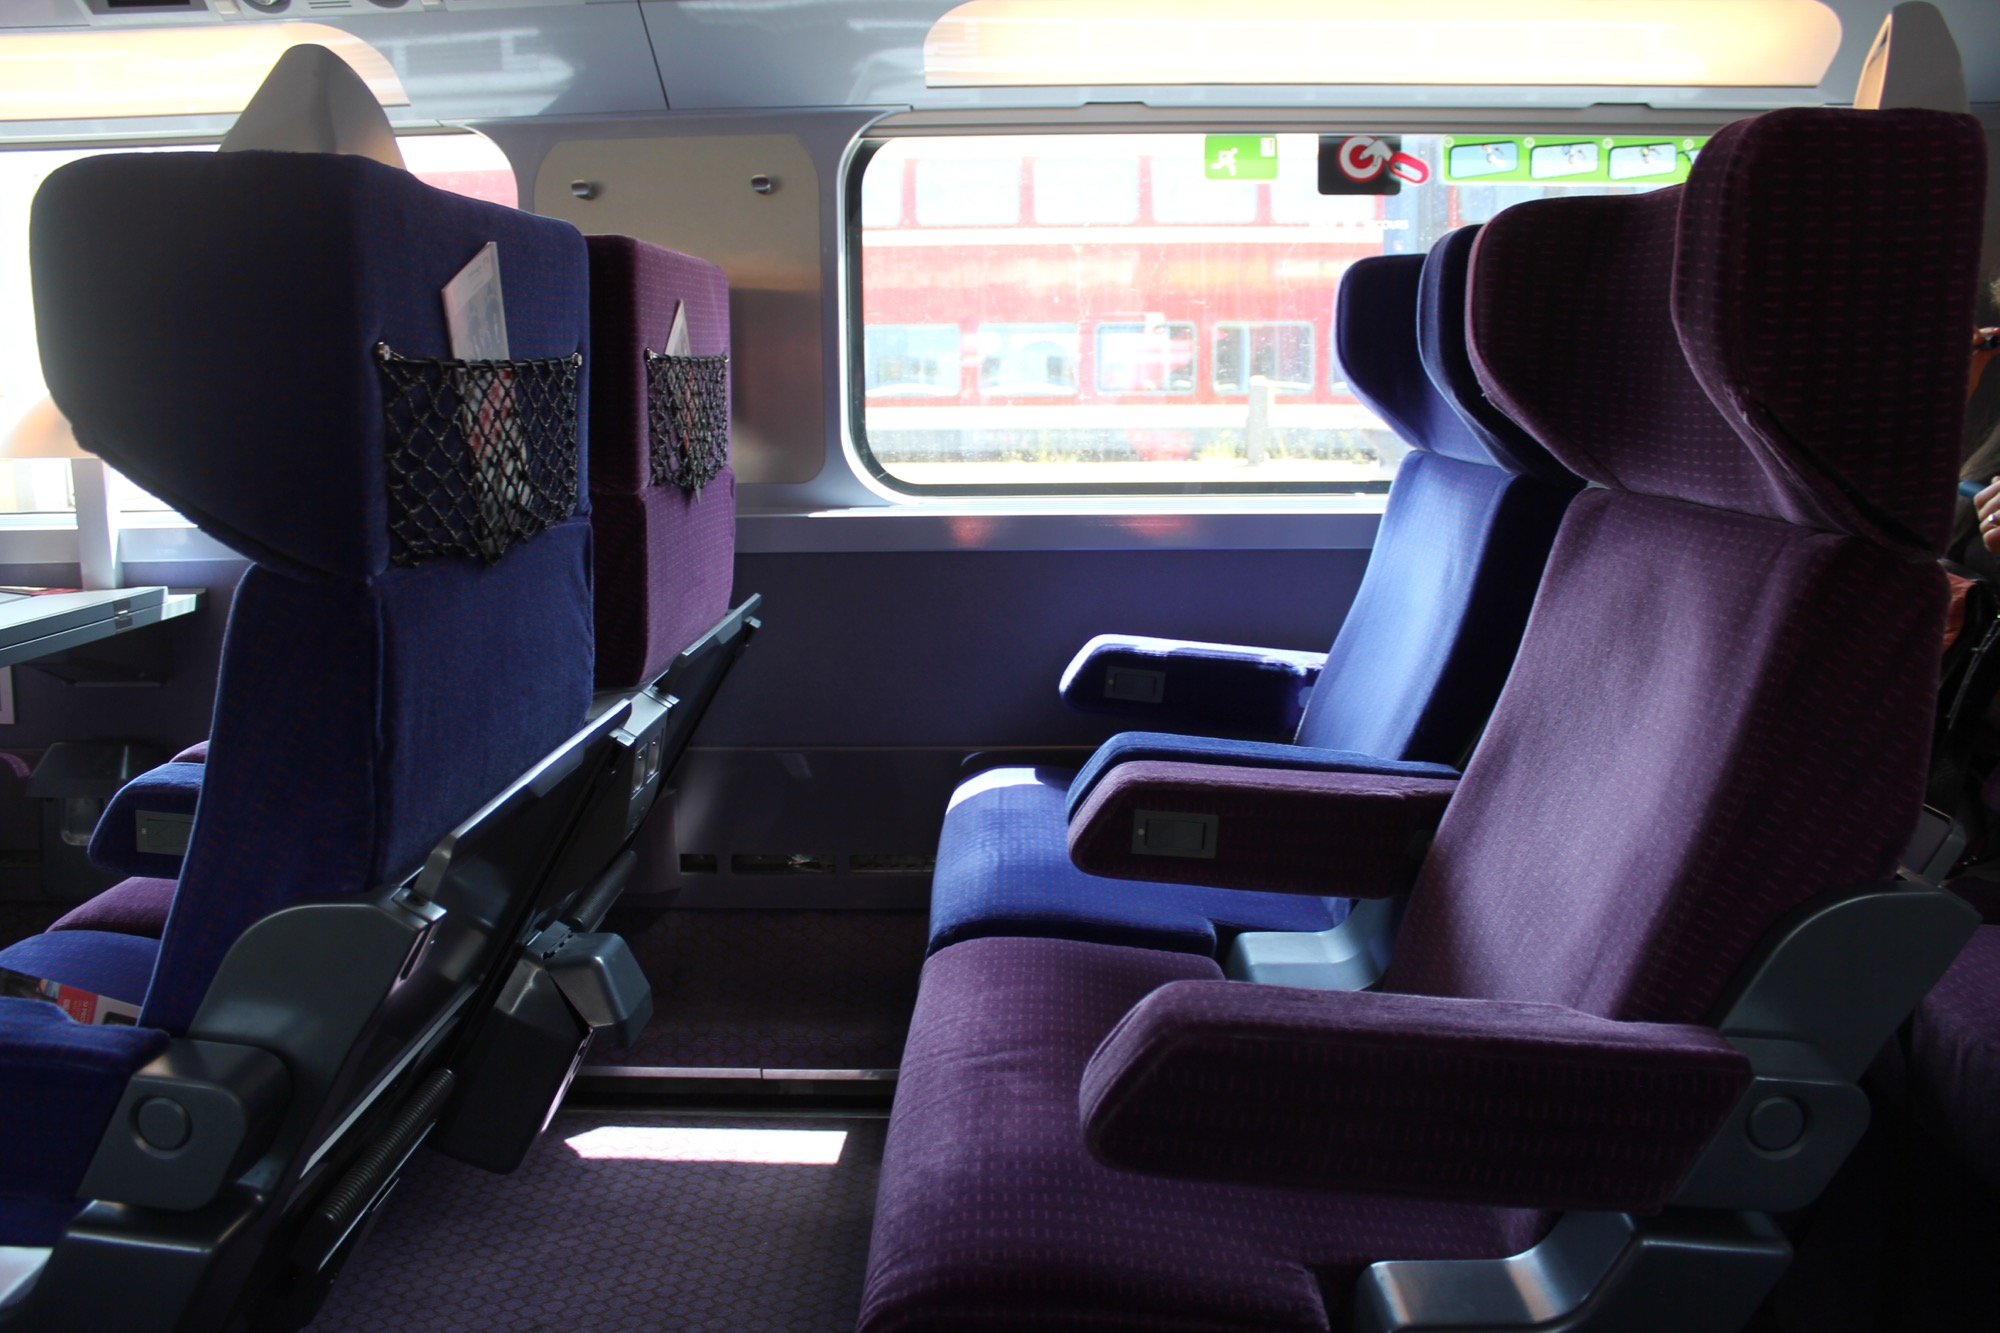 velvet 5in1 air sofa bed reviews sofasworld recliners tgv first class from stuttgart to paris live and let 39s fly